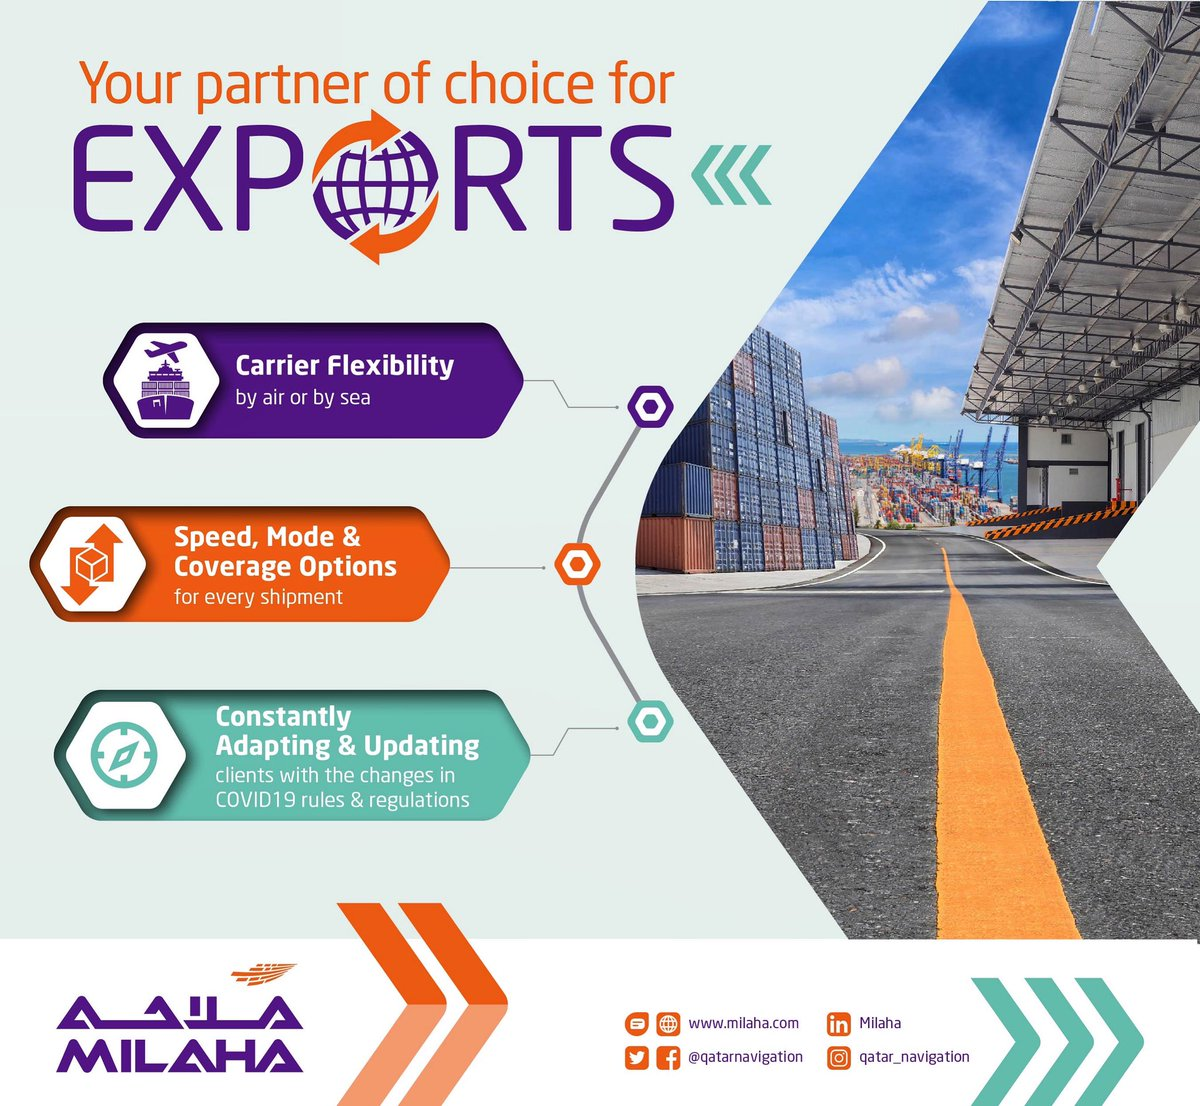 Your partner of choice for Exports. milaha.com شريكك المفضل للصادرات milaha.com #exports #exporter